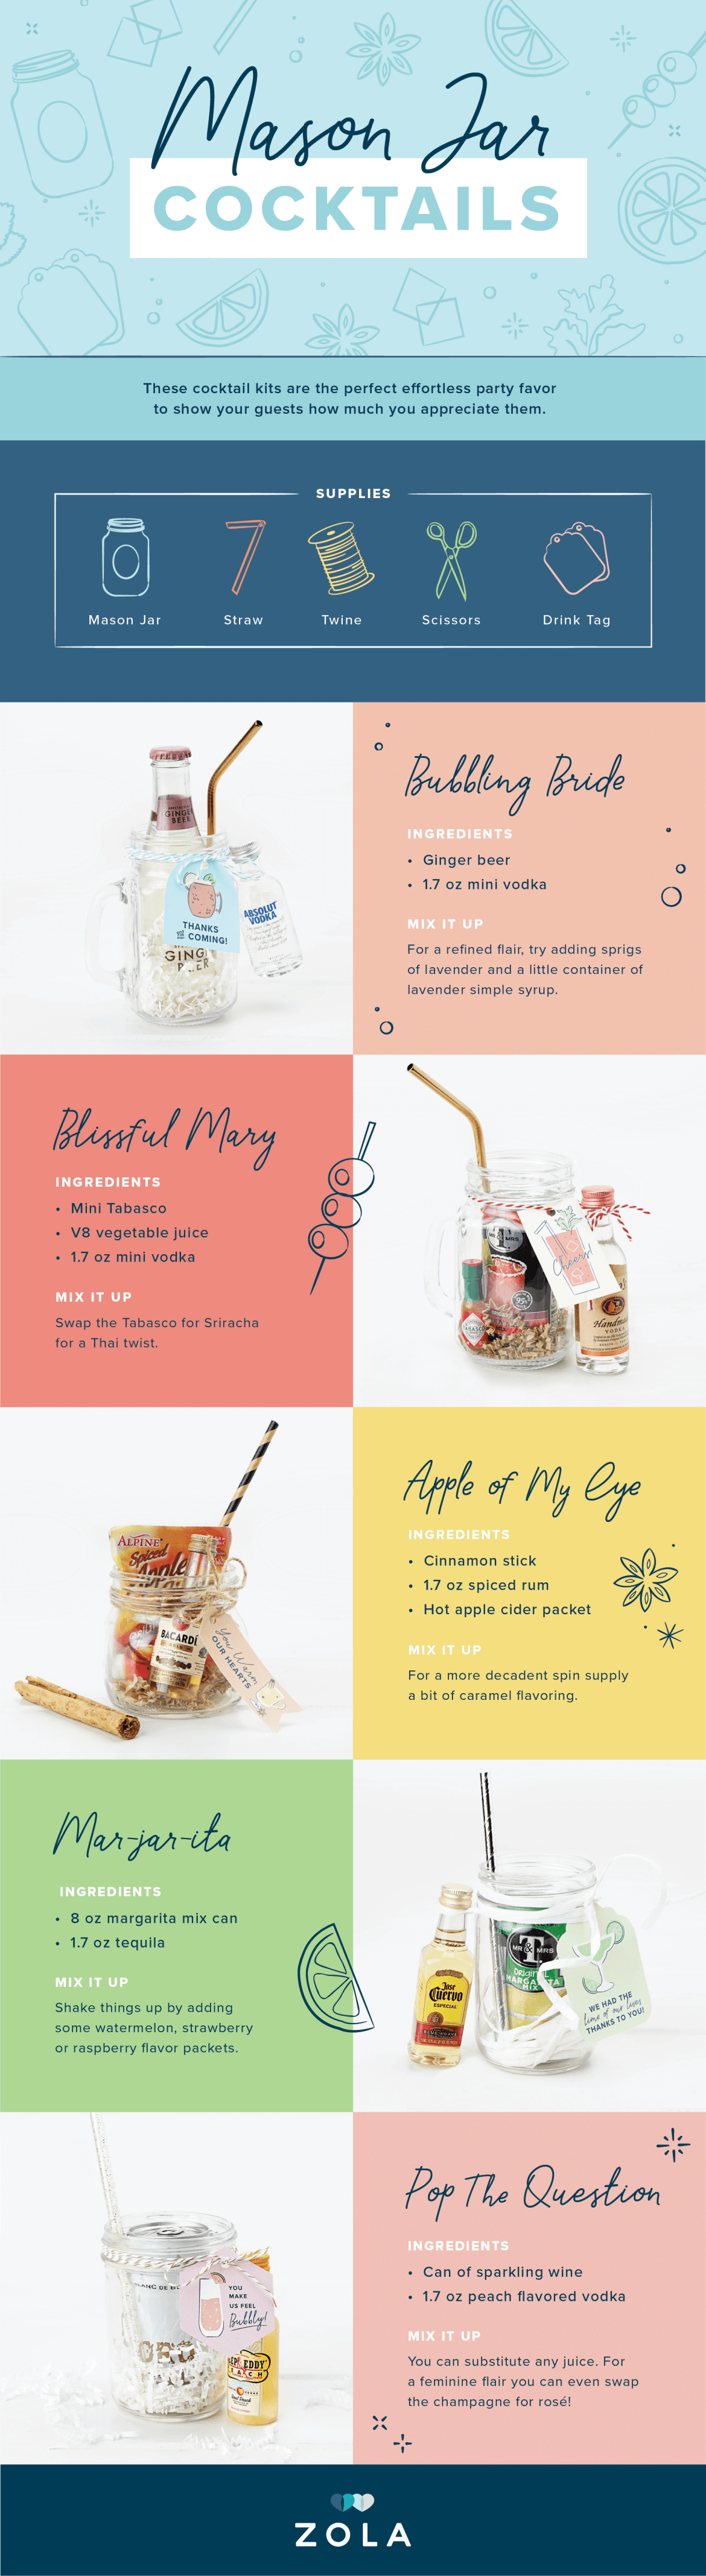 mason-jar-cocktails-infographic